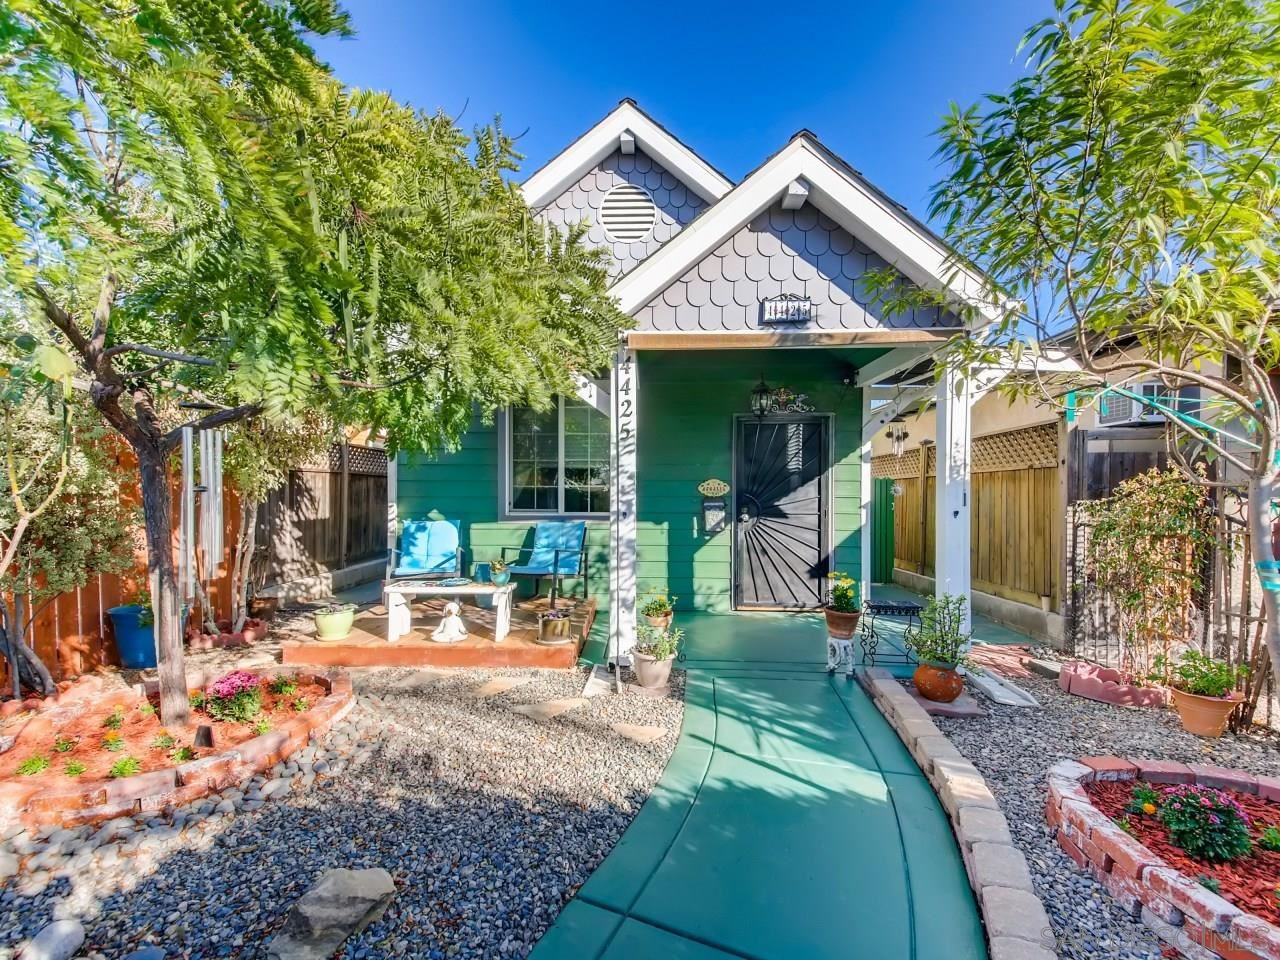 Photo for 4425 Cherokee Ave., San Diego, CA 92116 (MLS # 200051660)